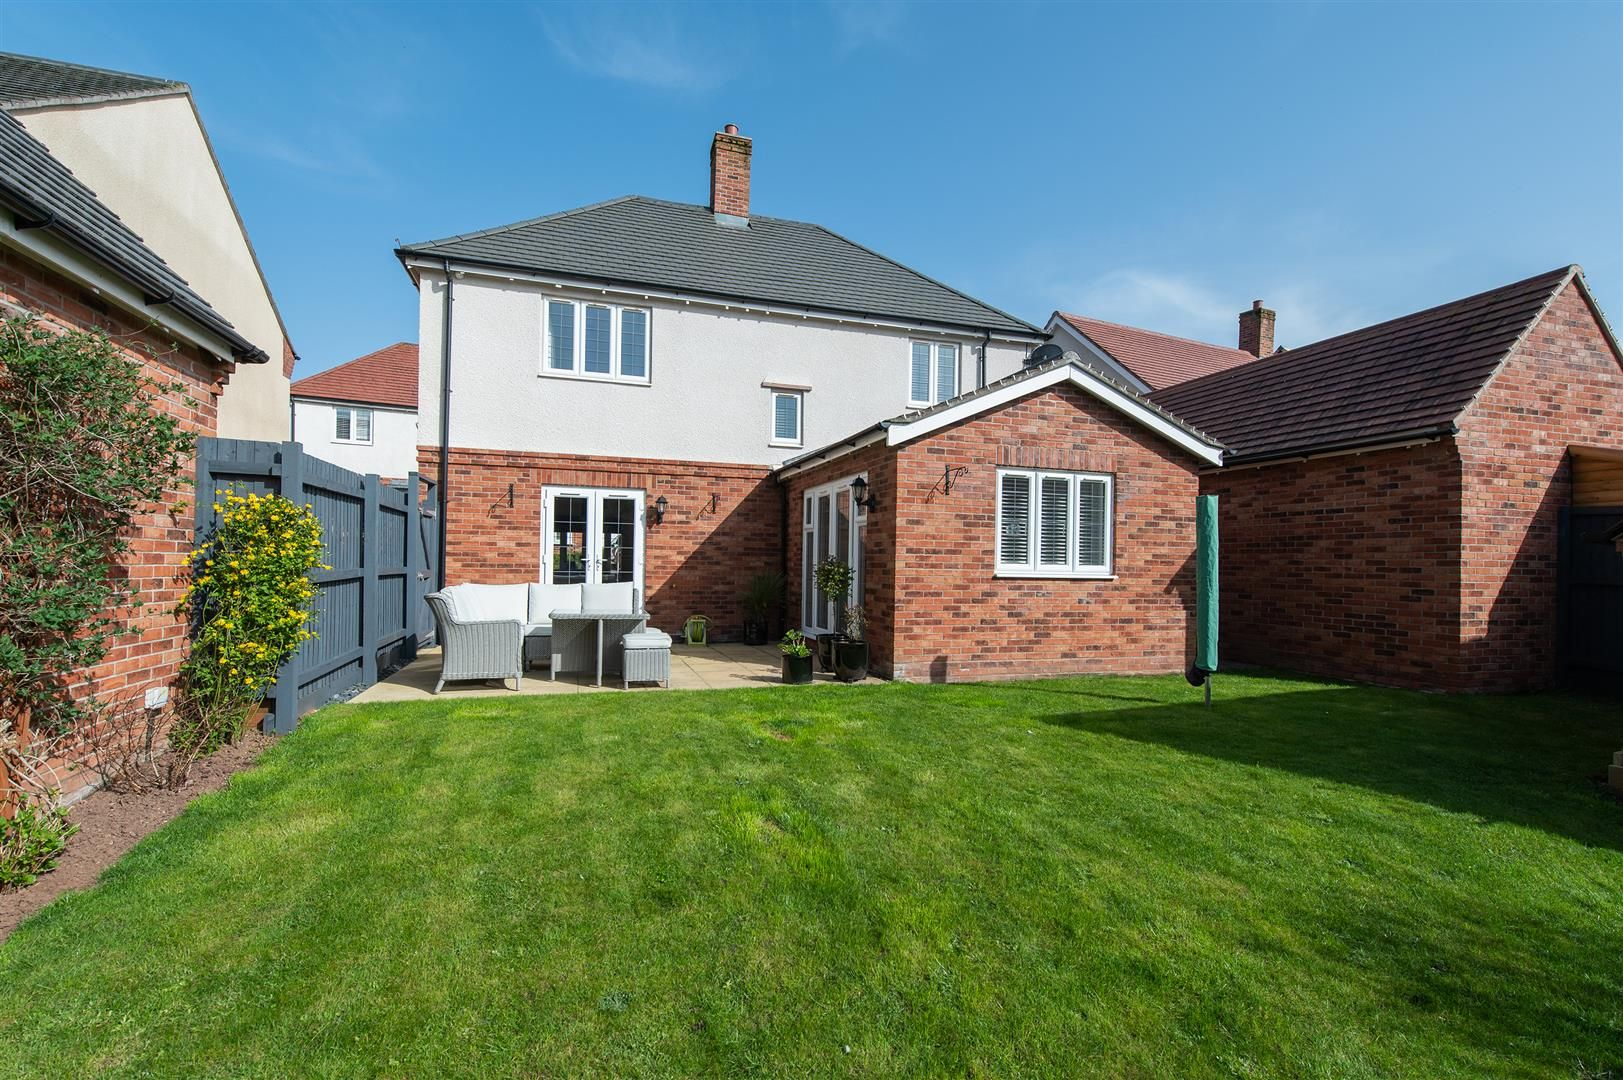 3 bed detached for sale in Hagley 23